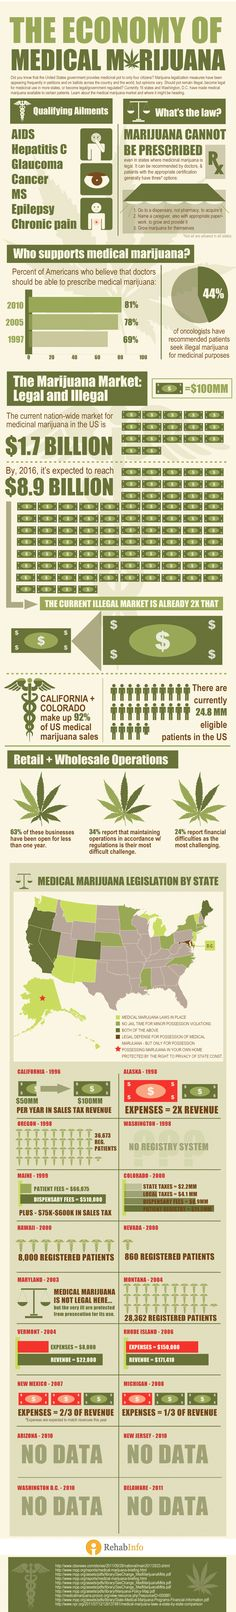 #Infographic: The Economy Of Medical Marijuana | Did you know that the United States government provides medicinal pot to only four citizens? Marijuana legalization measures have been appearing frequently in petitions and on ballots across the country and the world, but opinions vary. Currently 16 states and Washington D.C. have made medical marijuana available to certain patients. Learn about the medical marijuana market and where it might be heading.